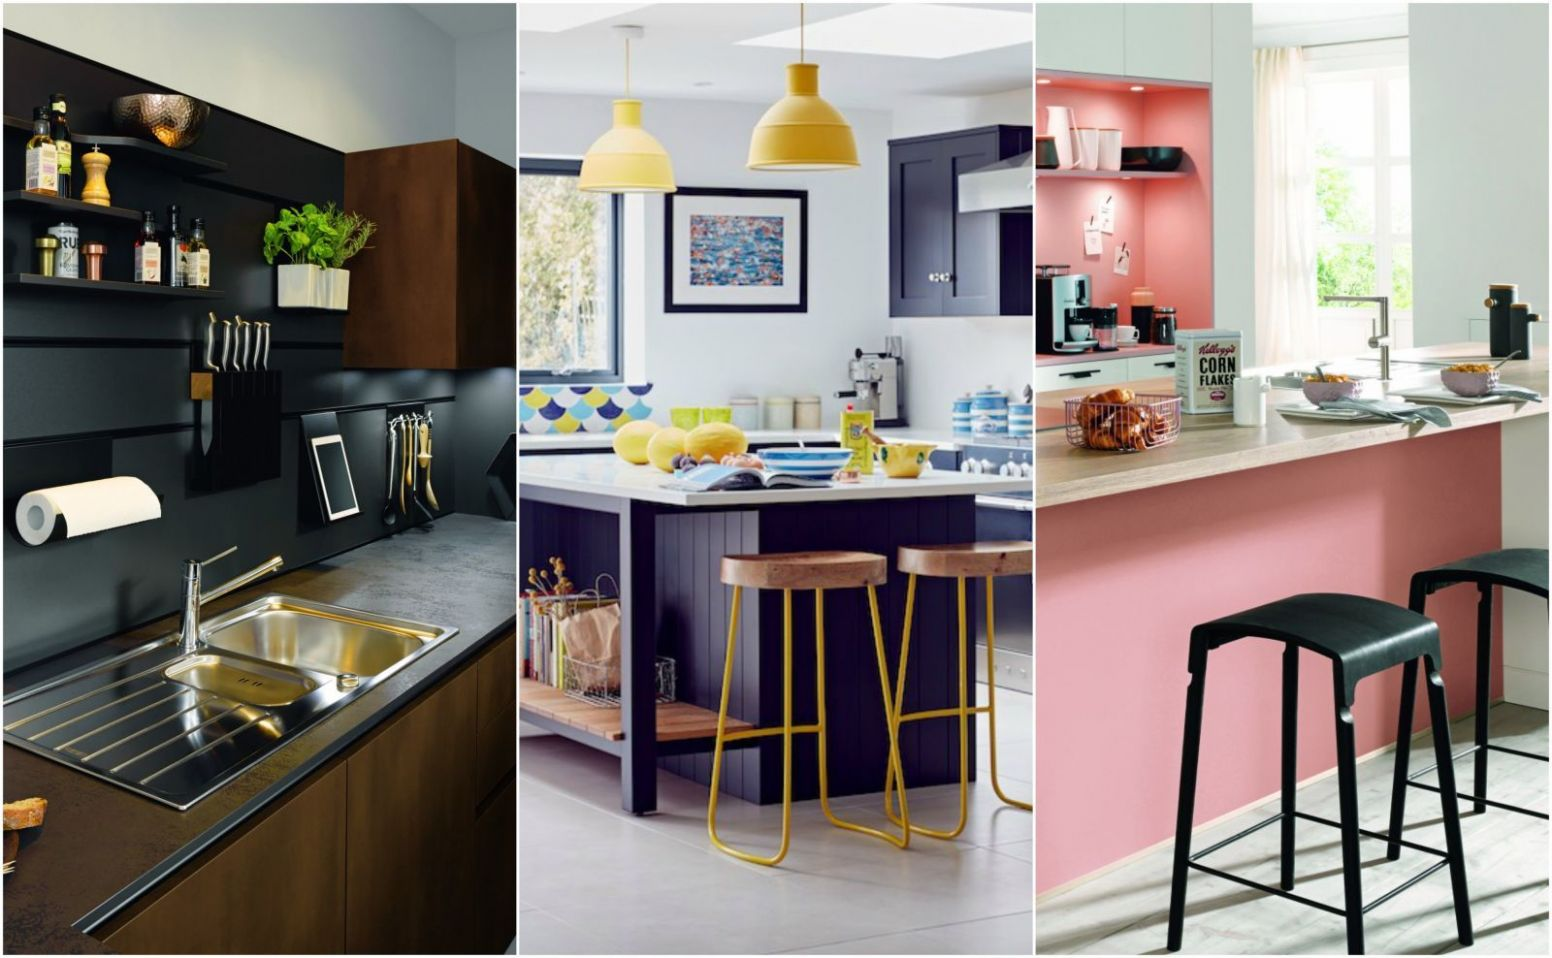 10 kitchen trends for 1010 you need to know about | Kitchen design ...